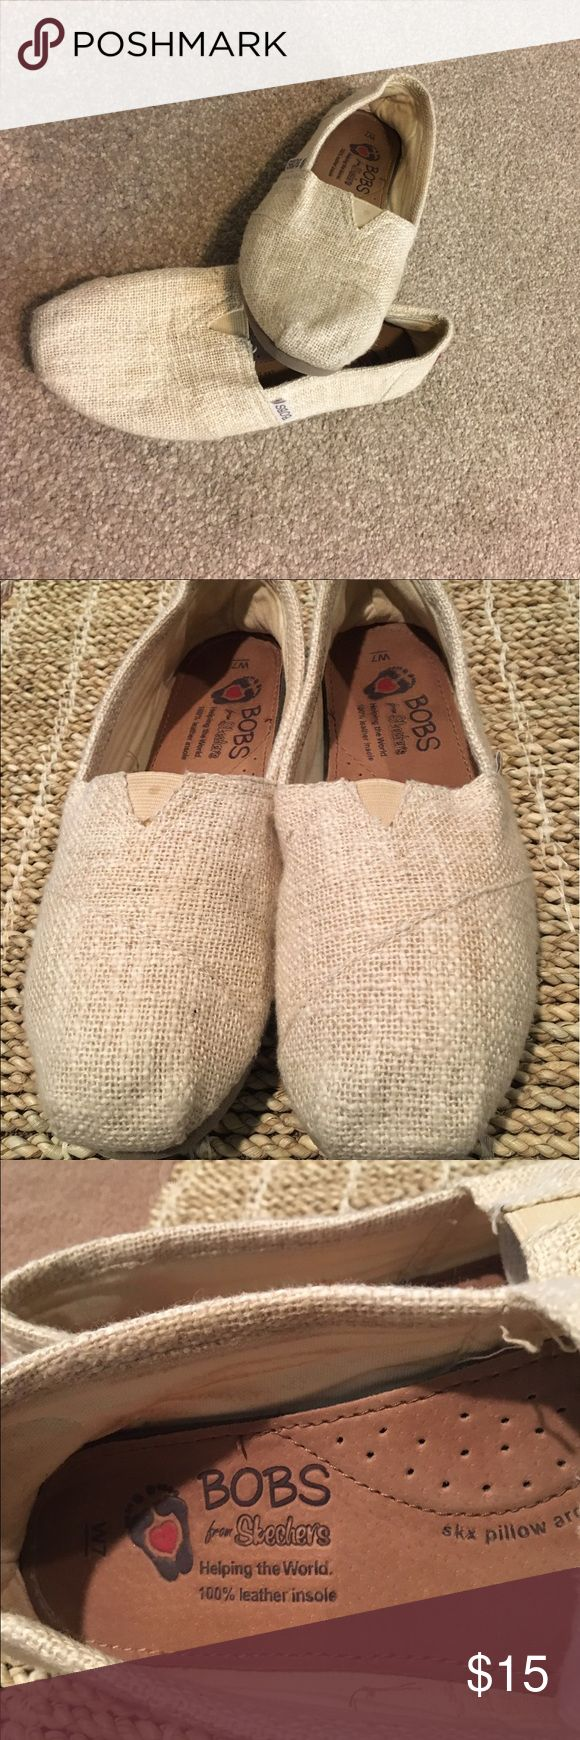 BOBS from Skecher's (sz7M) Color creamy wheat   🌾 Bobs Shoes Flats & Loafers